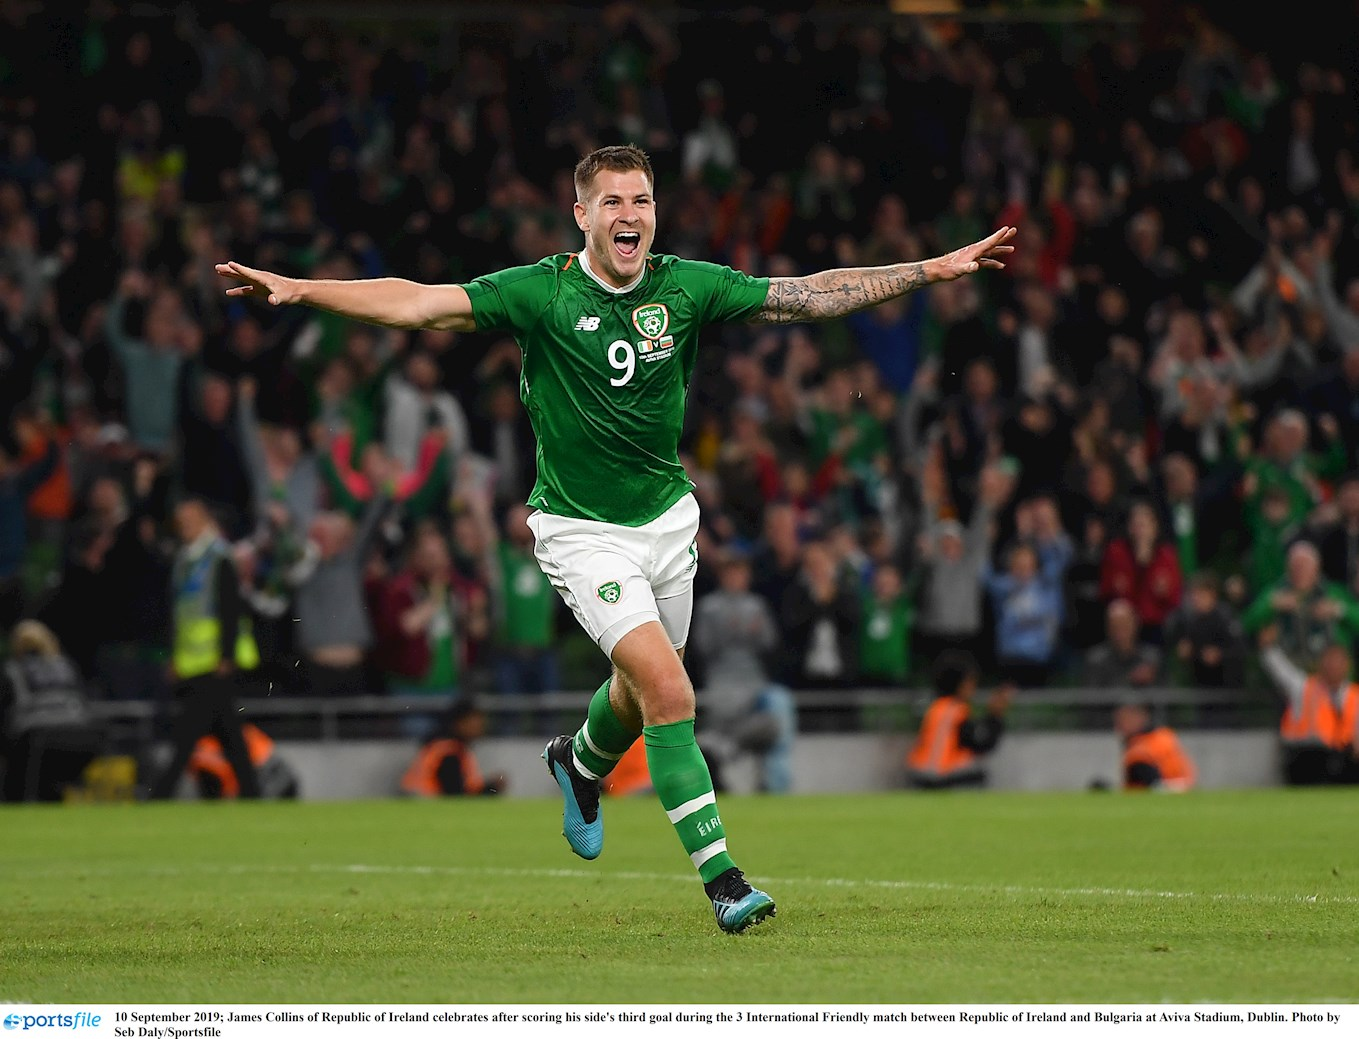 James Collins celebrates his goal on his international debut for the Republic of Ireland against Bulgaria